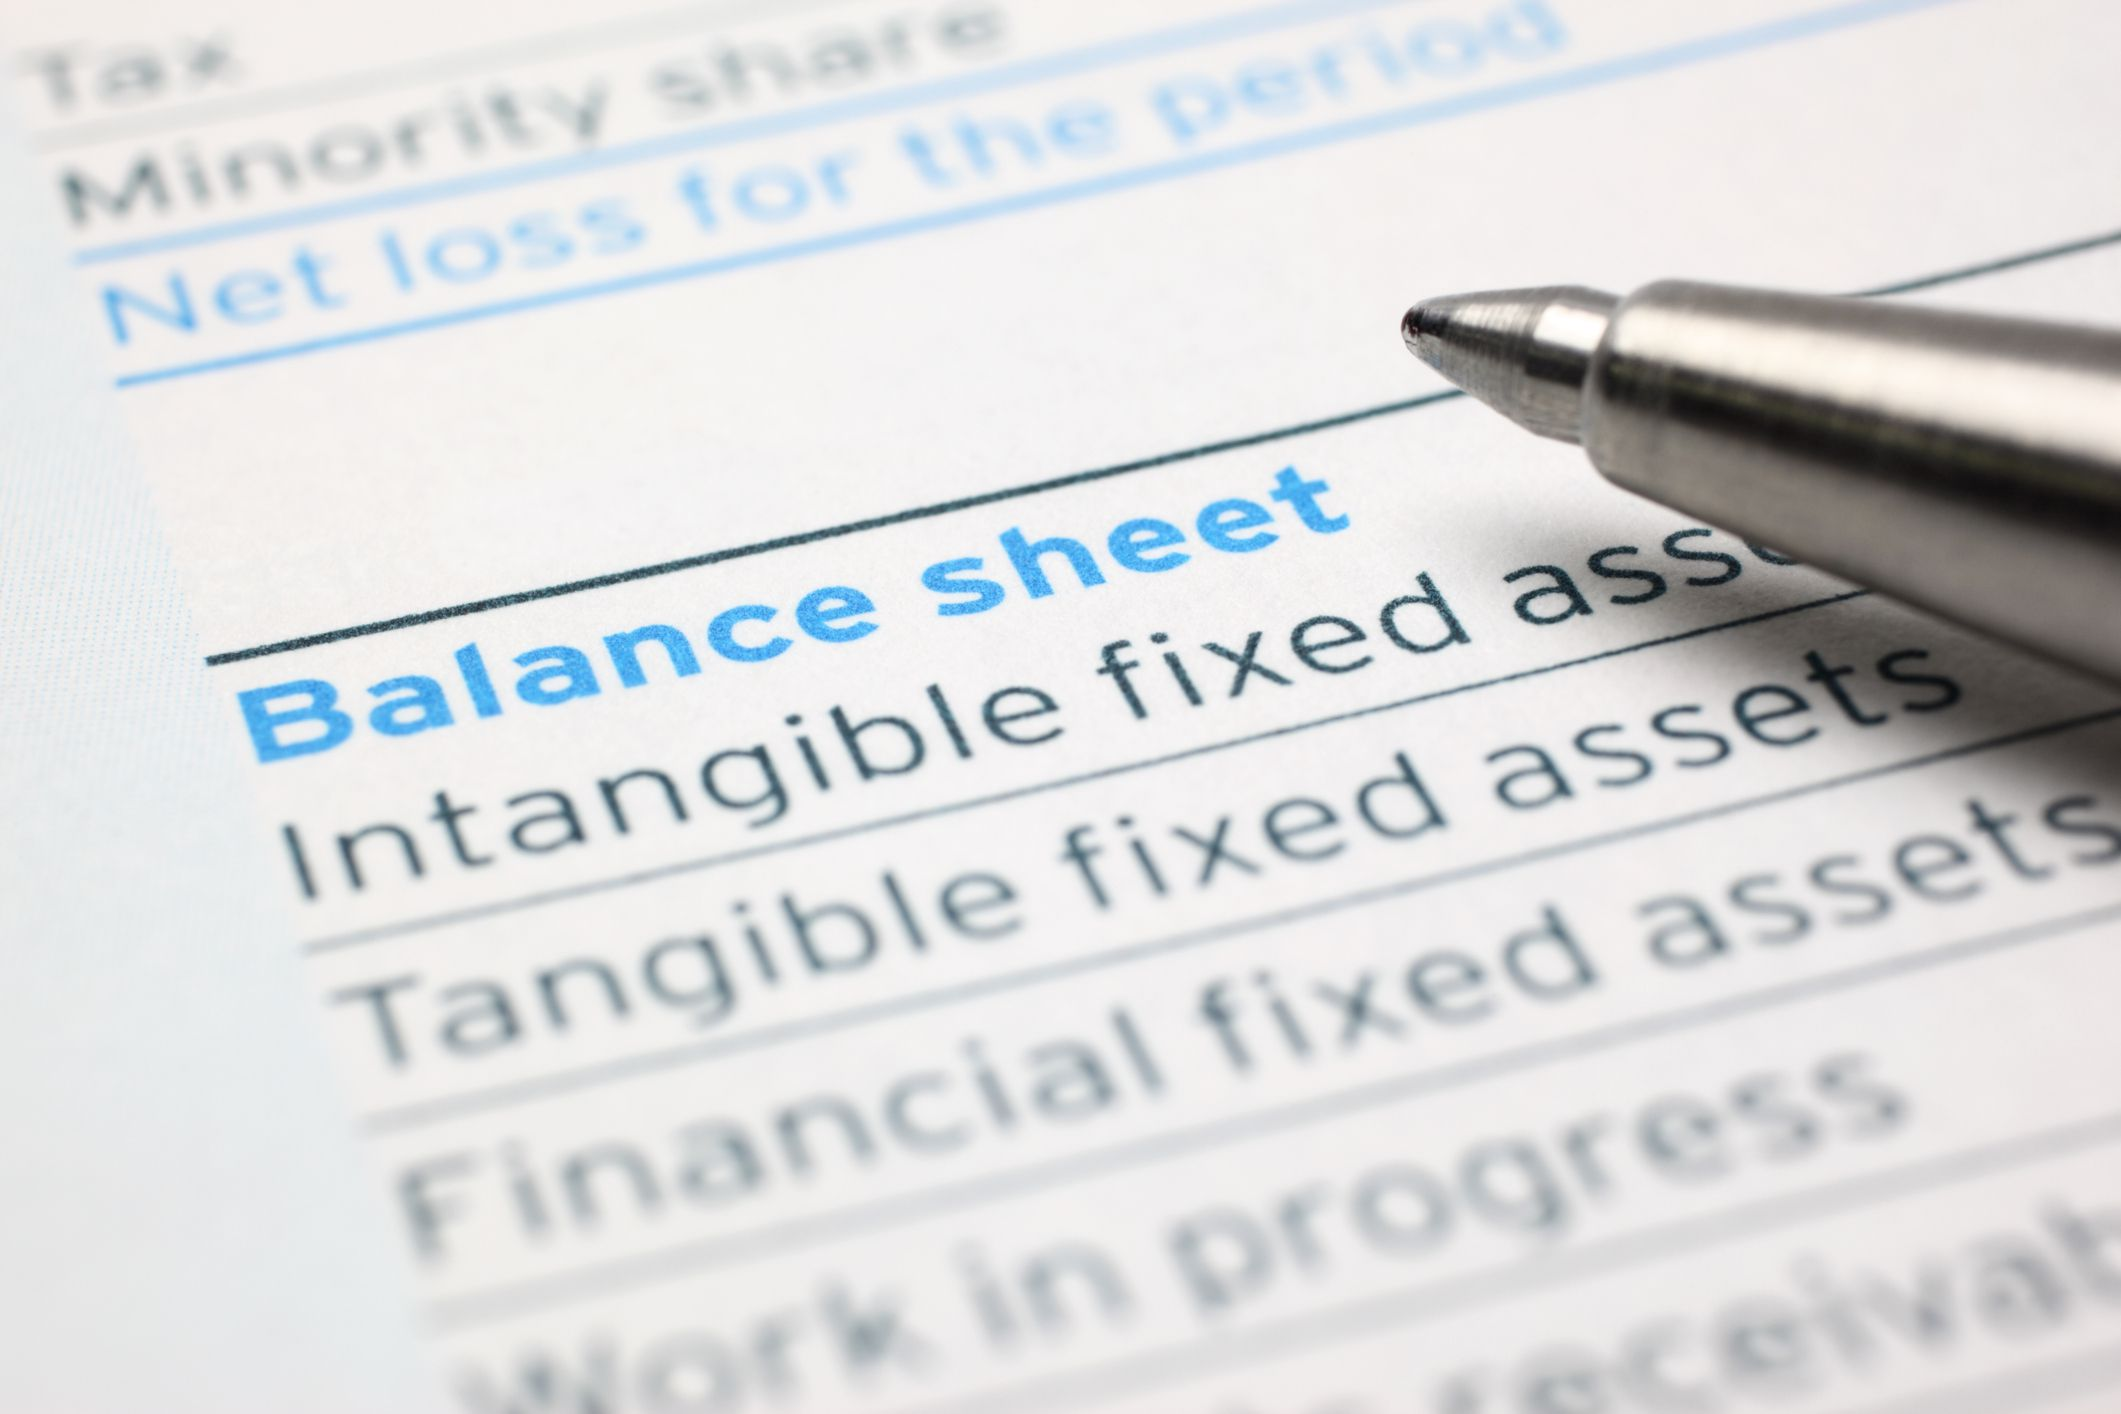 balance sheet and assets b liabilities The equation reflects how information is organized on the balance sheet, with assets listed on the left and liabilities and equity on the right.